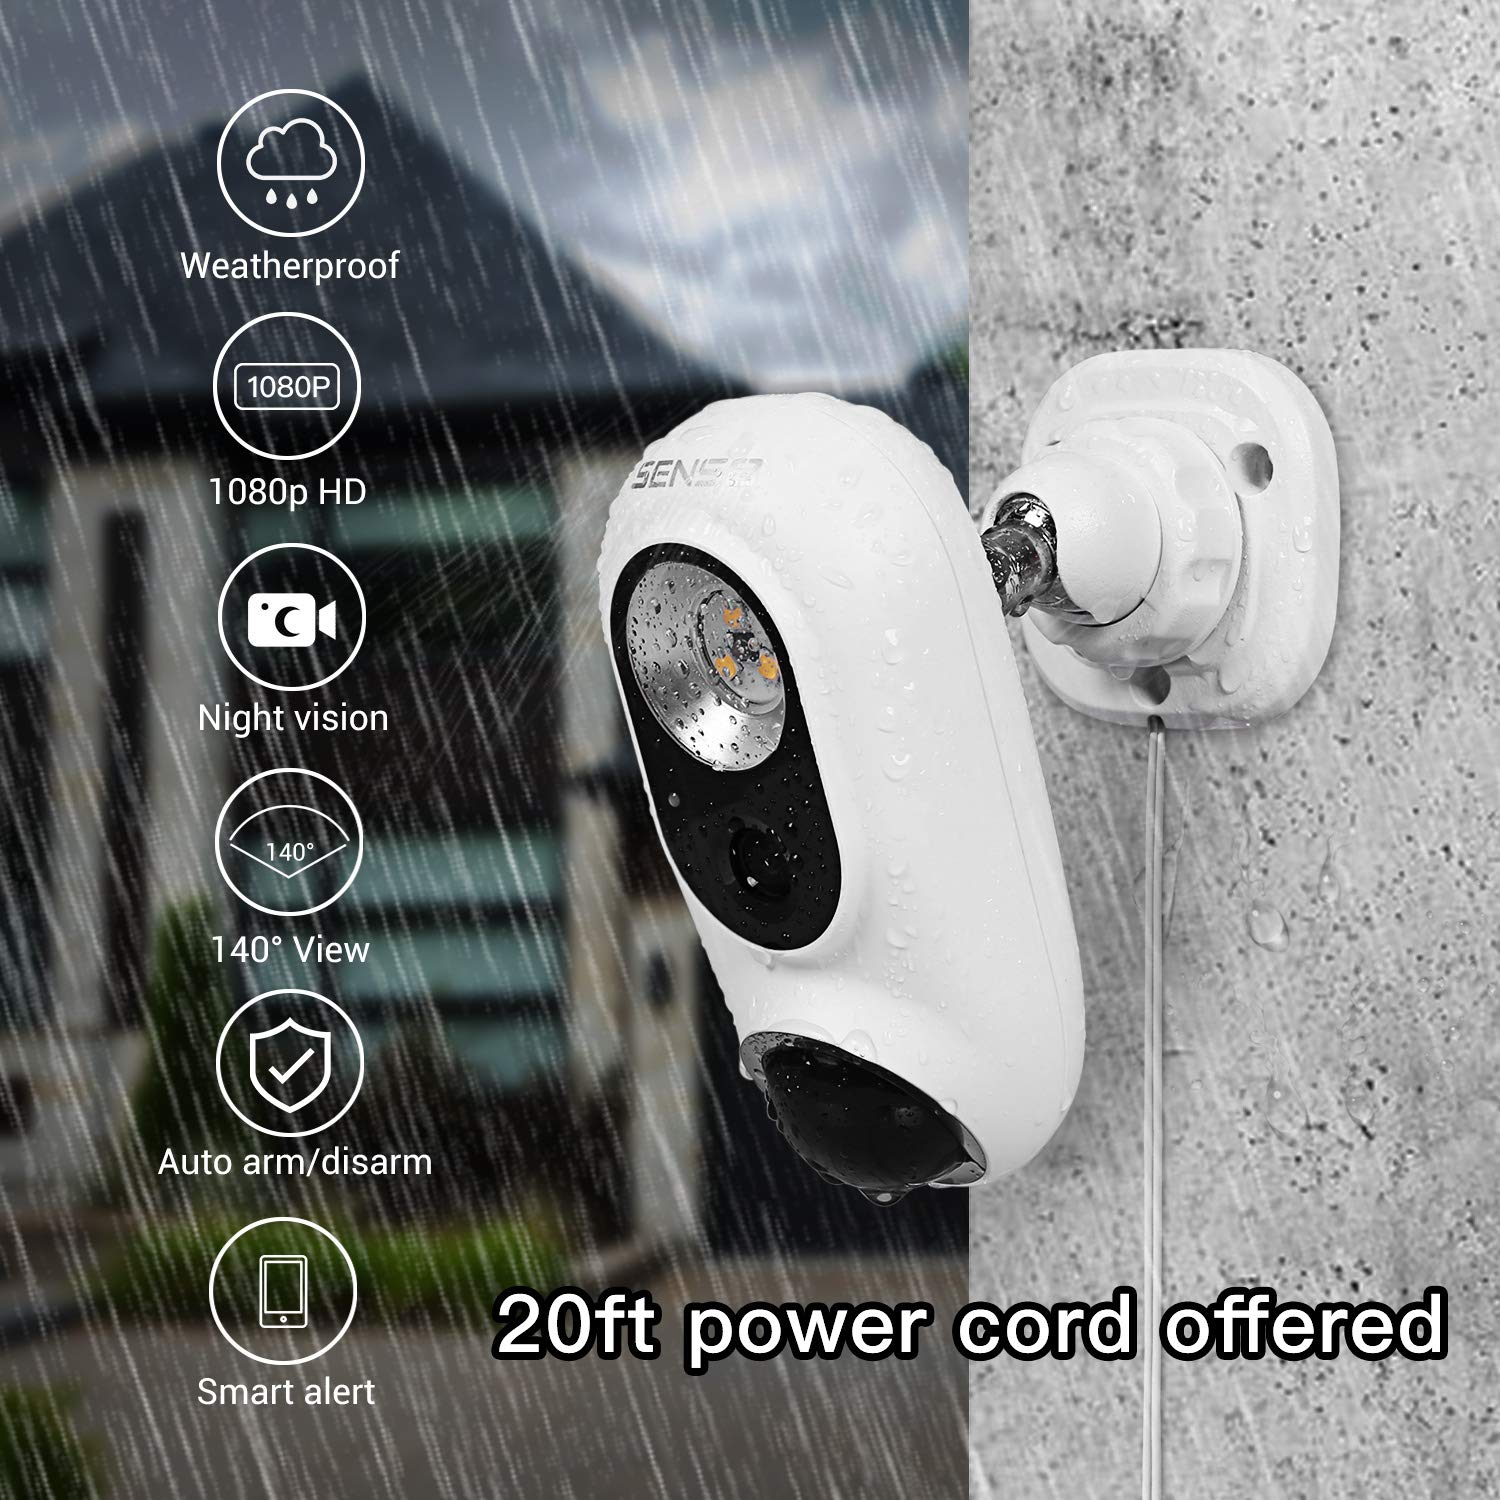 SENS8 Outdoor Camera with Light, 1080p HD, Wi-Fi Home Security Camera, No Subscription, Customized Motion Zone, Motion Detection, Night Vision, Two-Way Audio and Siren Alarm by SENS8 (Image #4)